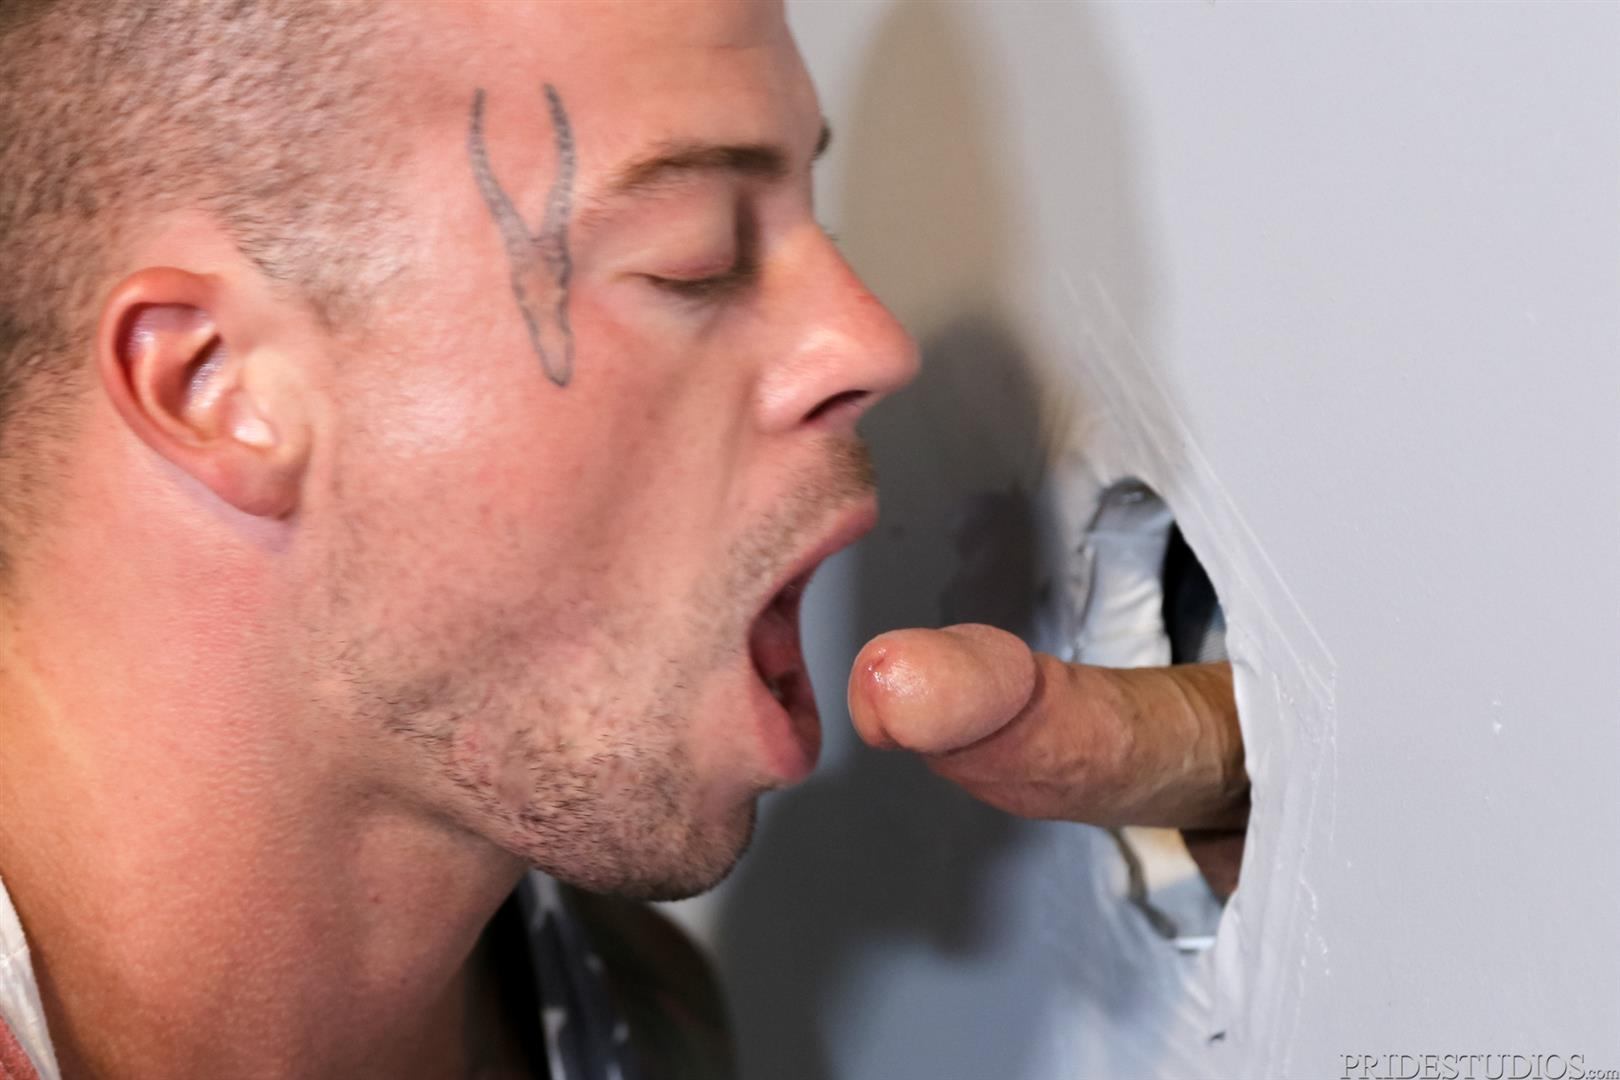 Extra Big Dicks Sean Duran Fucking Through A Glory Hole Amateur Gay Porn 04 Getting Fucked By A Big Fat Cock Through a Glory Hole